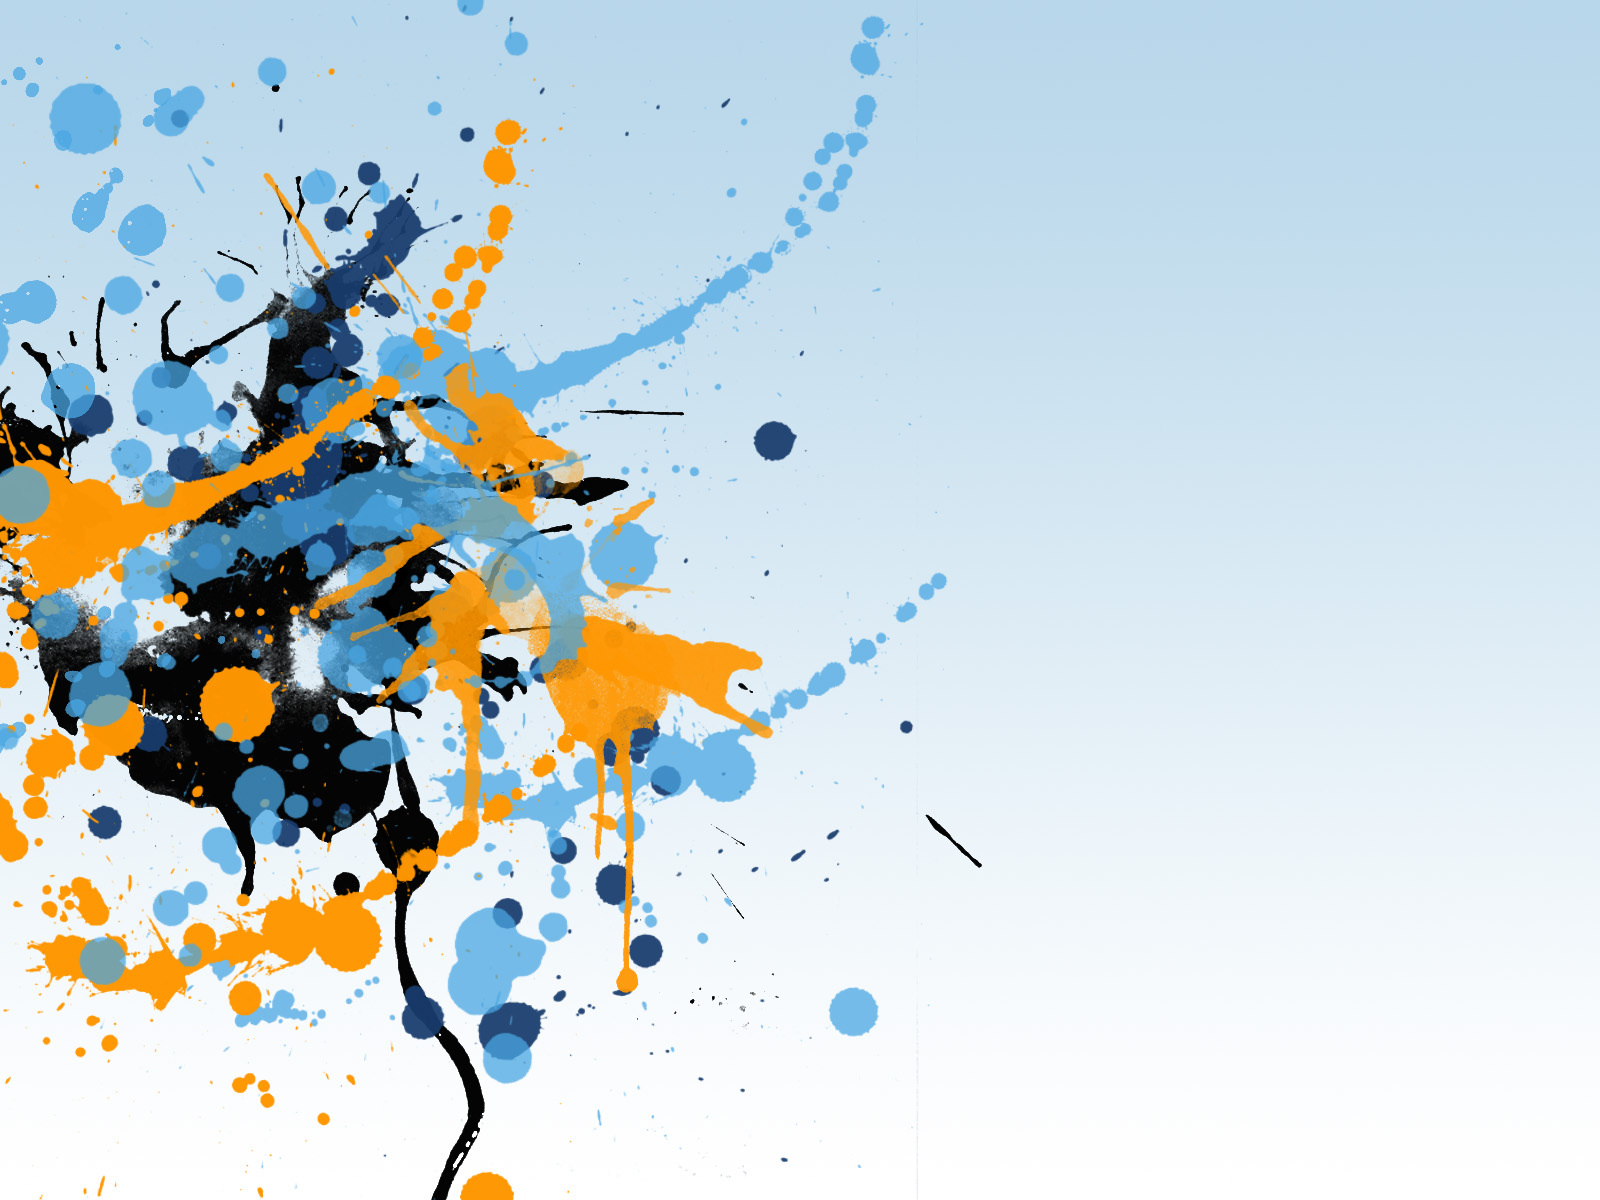 This is the great splatter ink blotch splash Wallpaper, Background